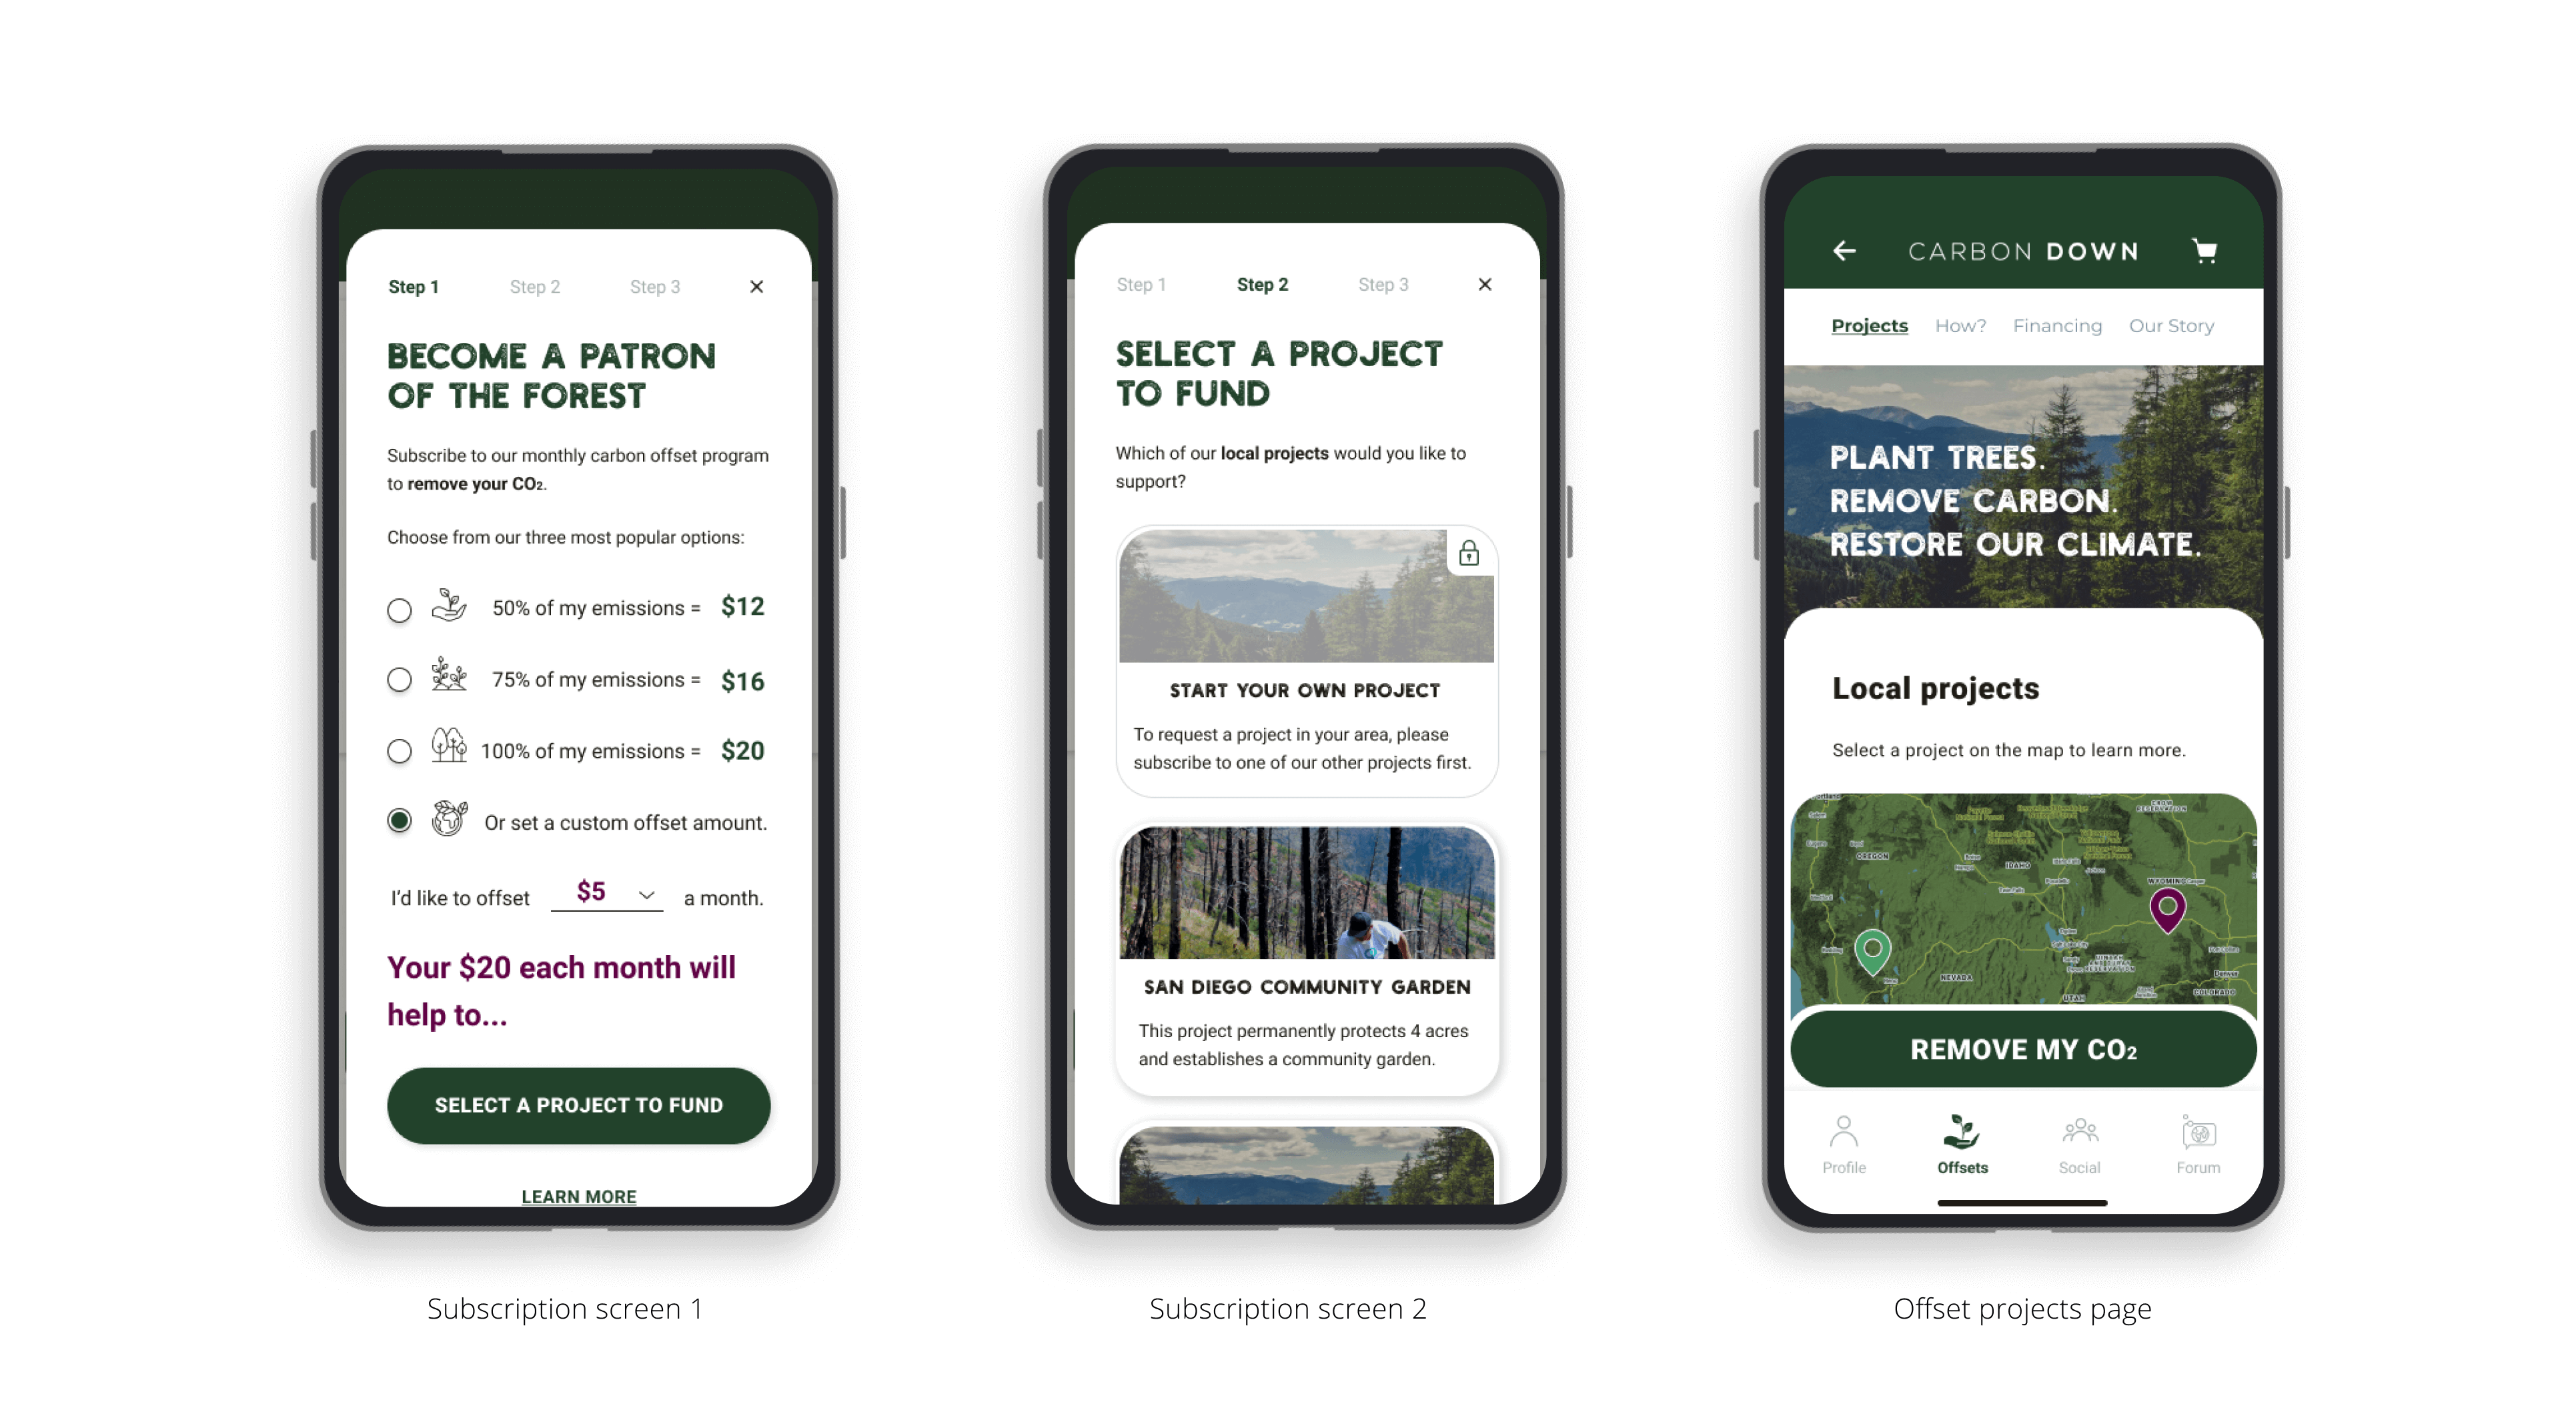 Subscription Screens for Carbon Down